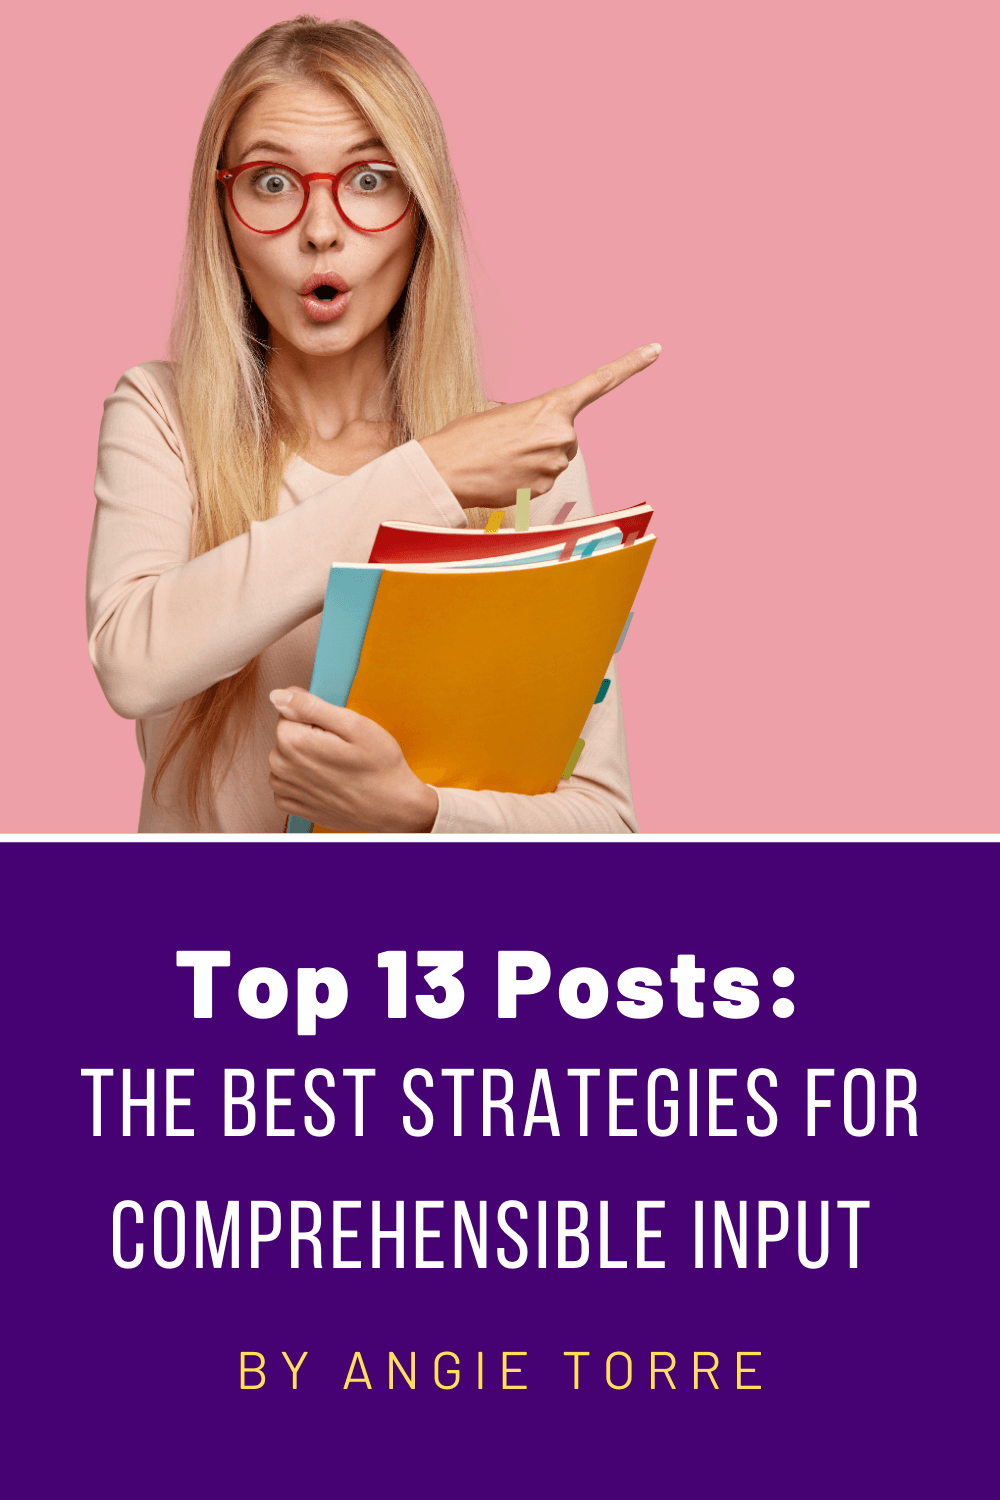 Top 13 Posts: The Best Strategies for Comprehensible Iinput